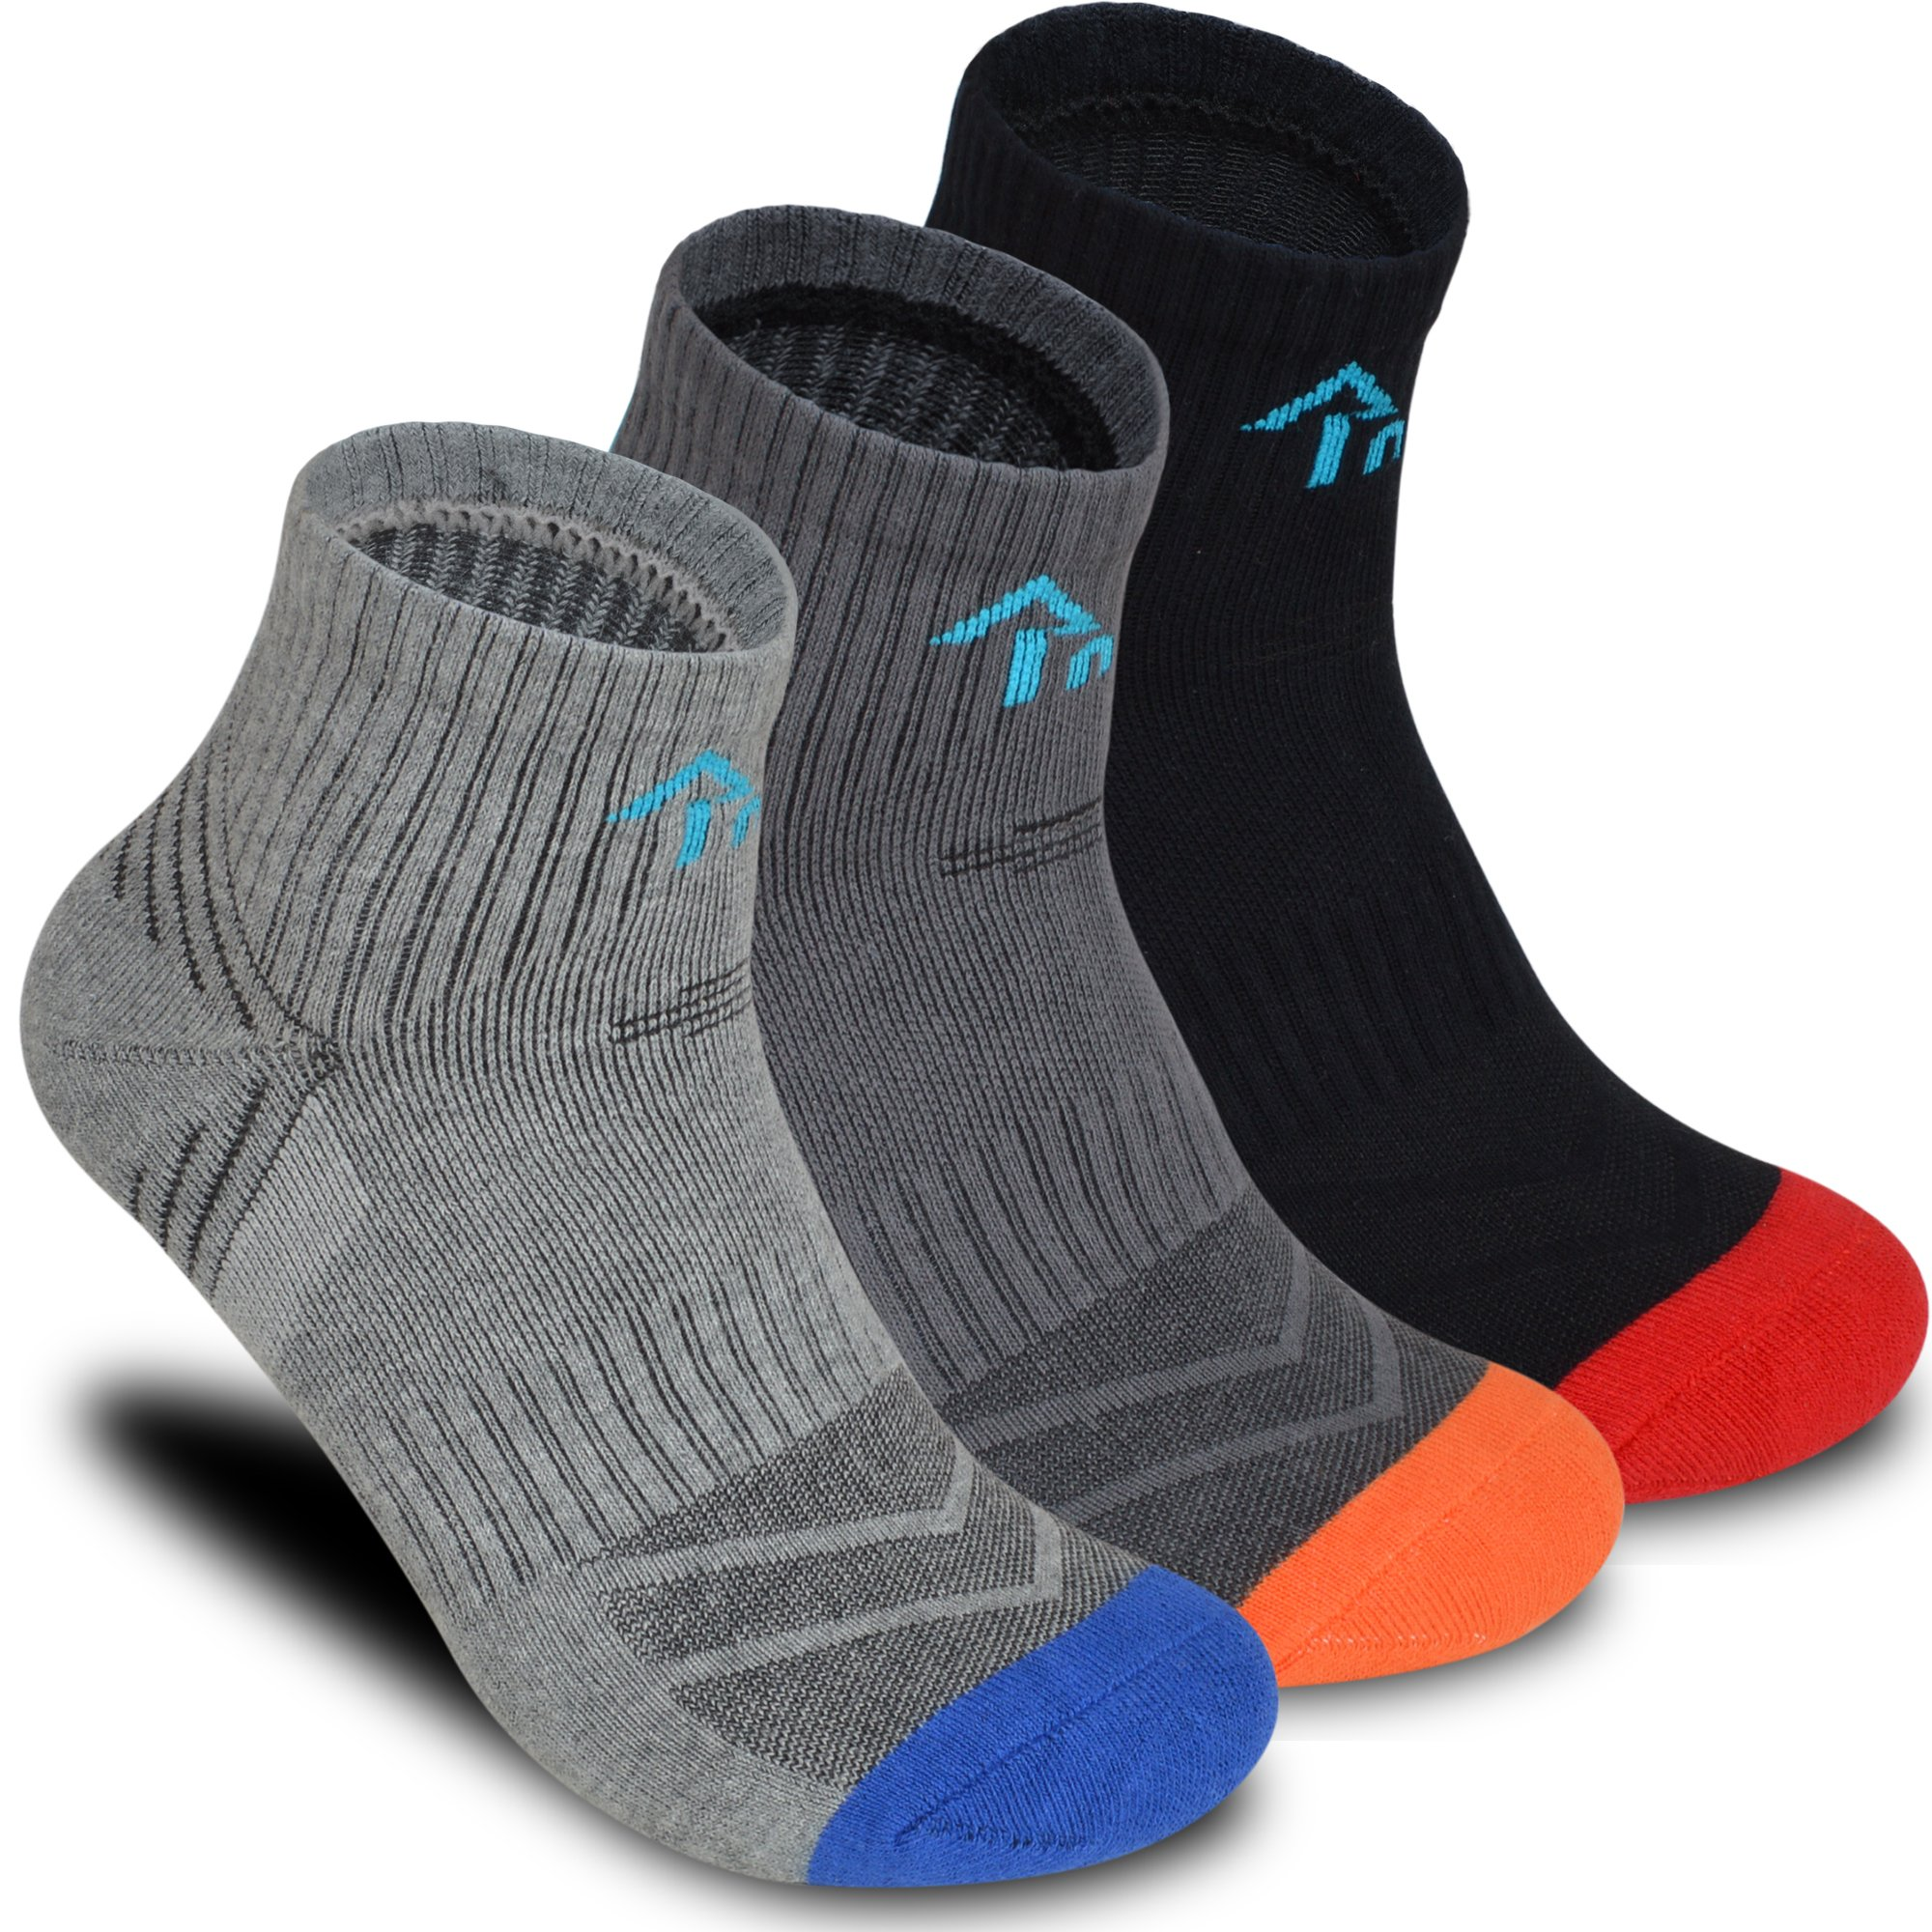 3 Pack Mens Socks - Athletic Socks Hiking Trekking Crew Cushion by Inneeding